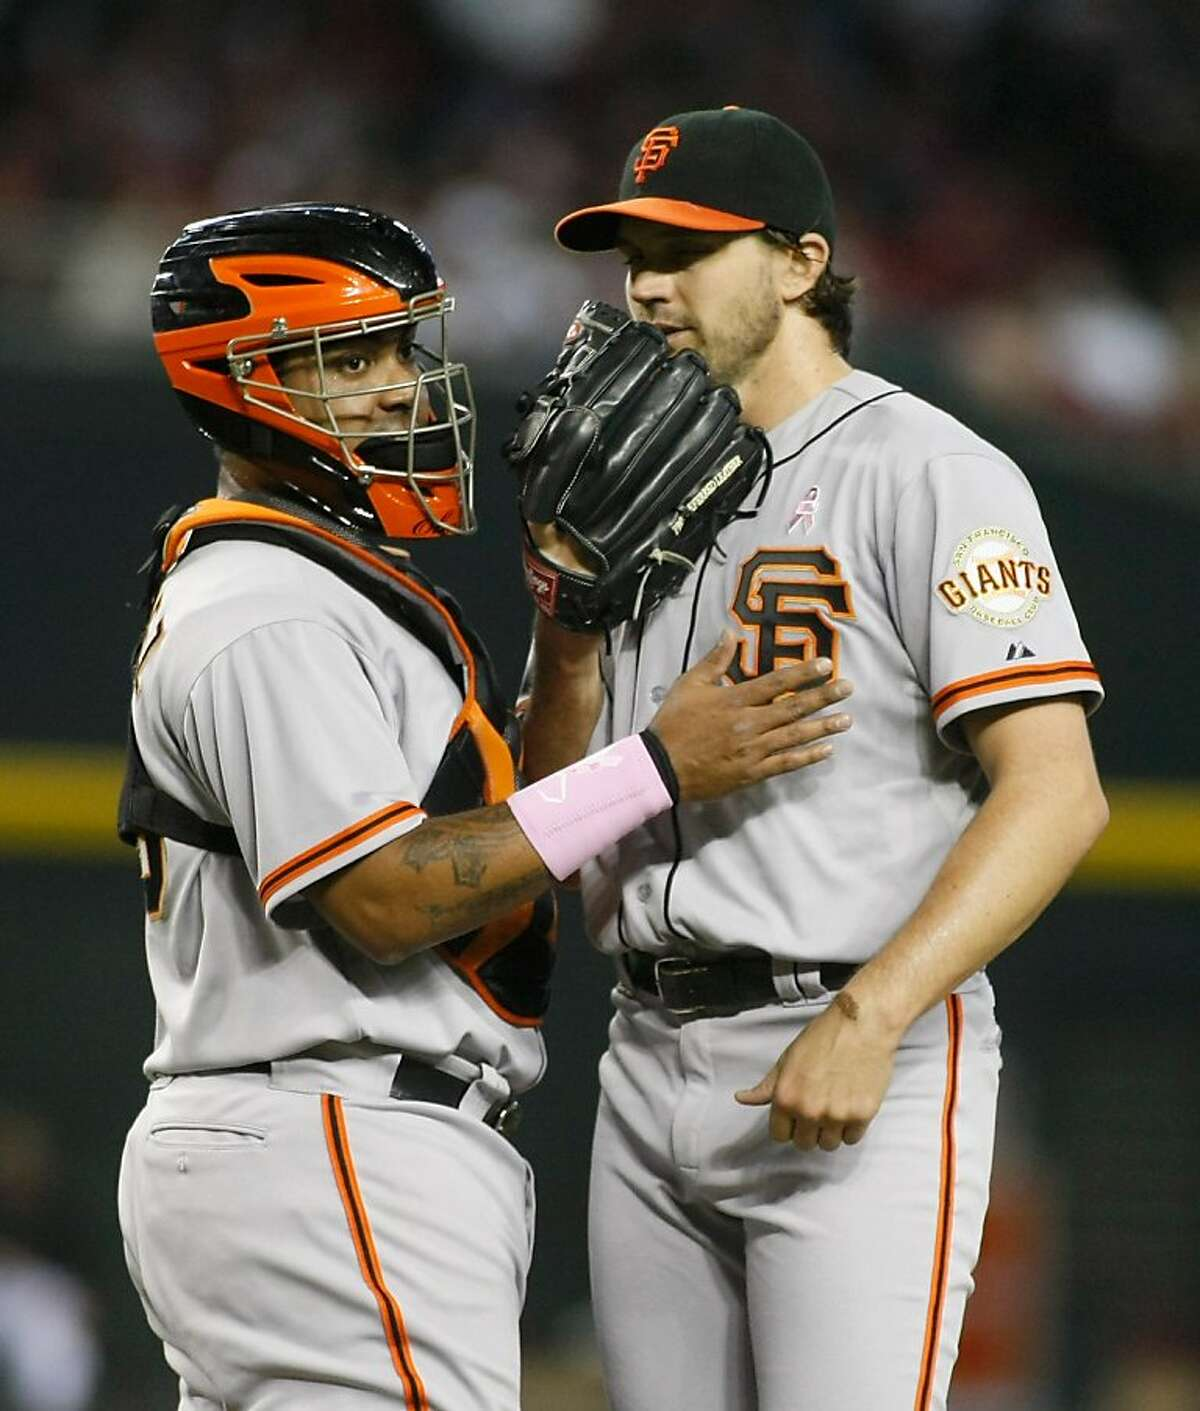 PHOENIX, AZ - MAY 13: Catcher Hector Sanchez #29 of the San Francisco Giants visits the mound for a conversation with pitcher Barry Zito #75 during the fourth inning of a MLB game against the Arizona Diamondbacks at Chase Field on May 13, 2012 in Phoenix, Arizona. (Photo by Ralph Freso/Getty Images)